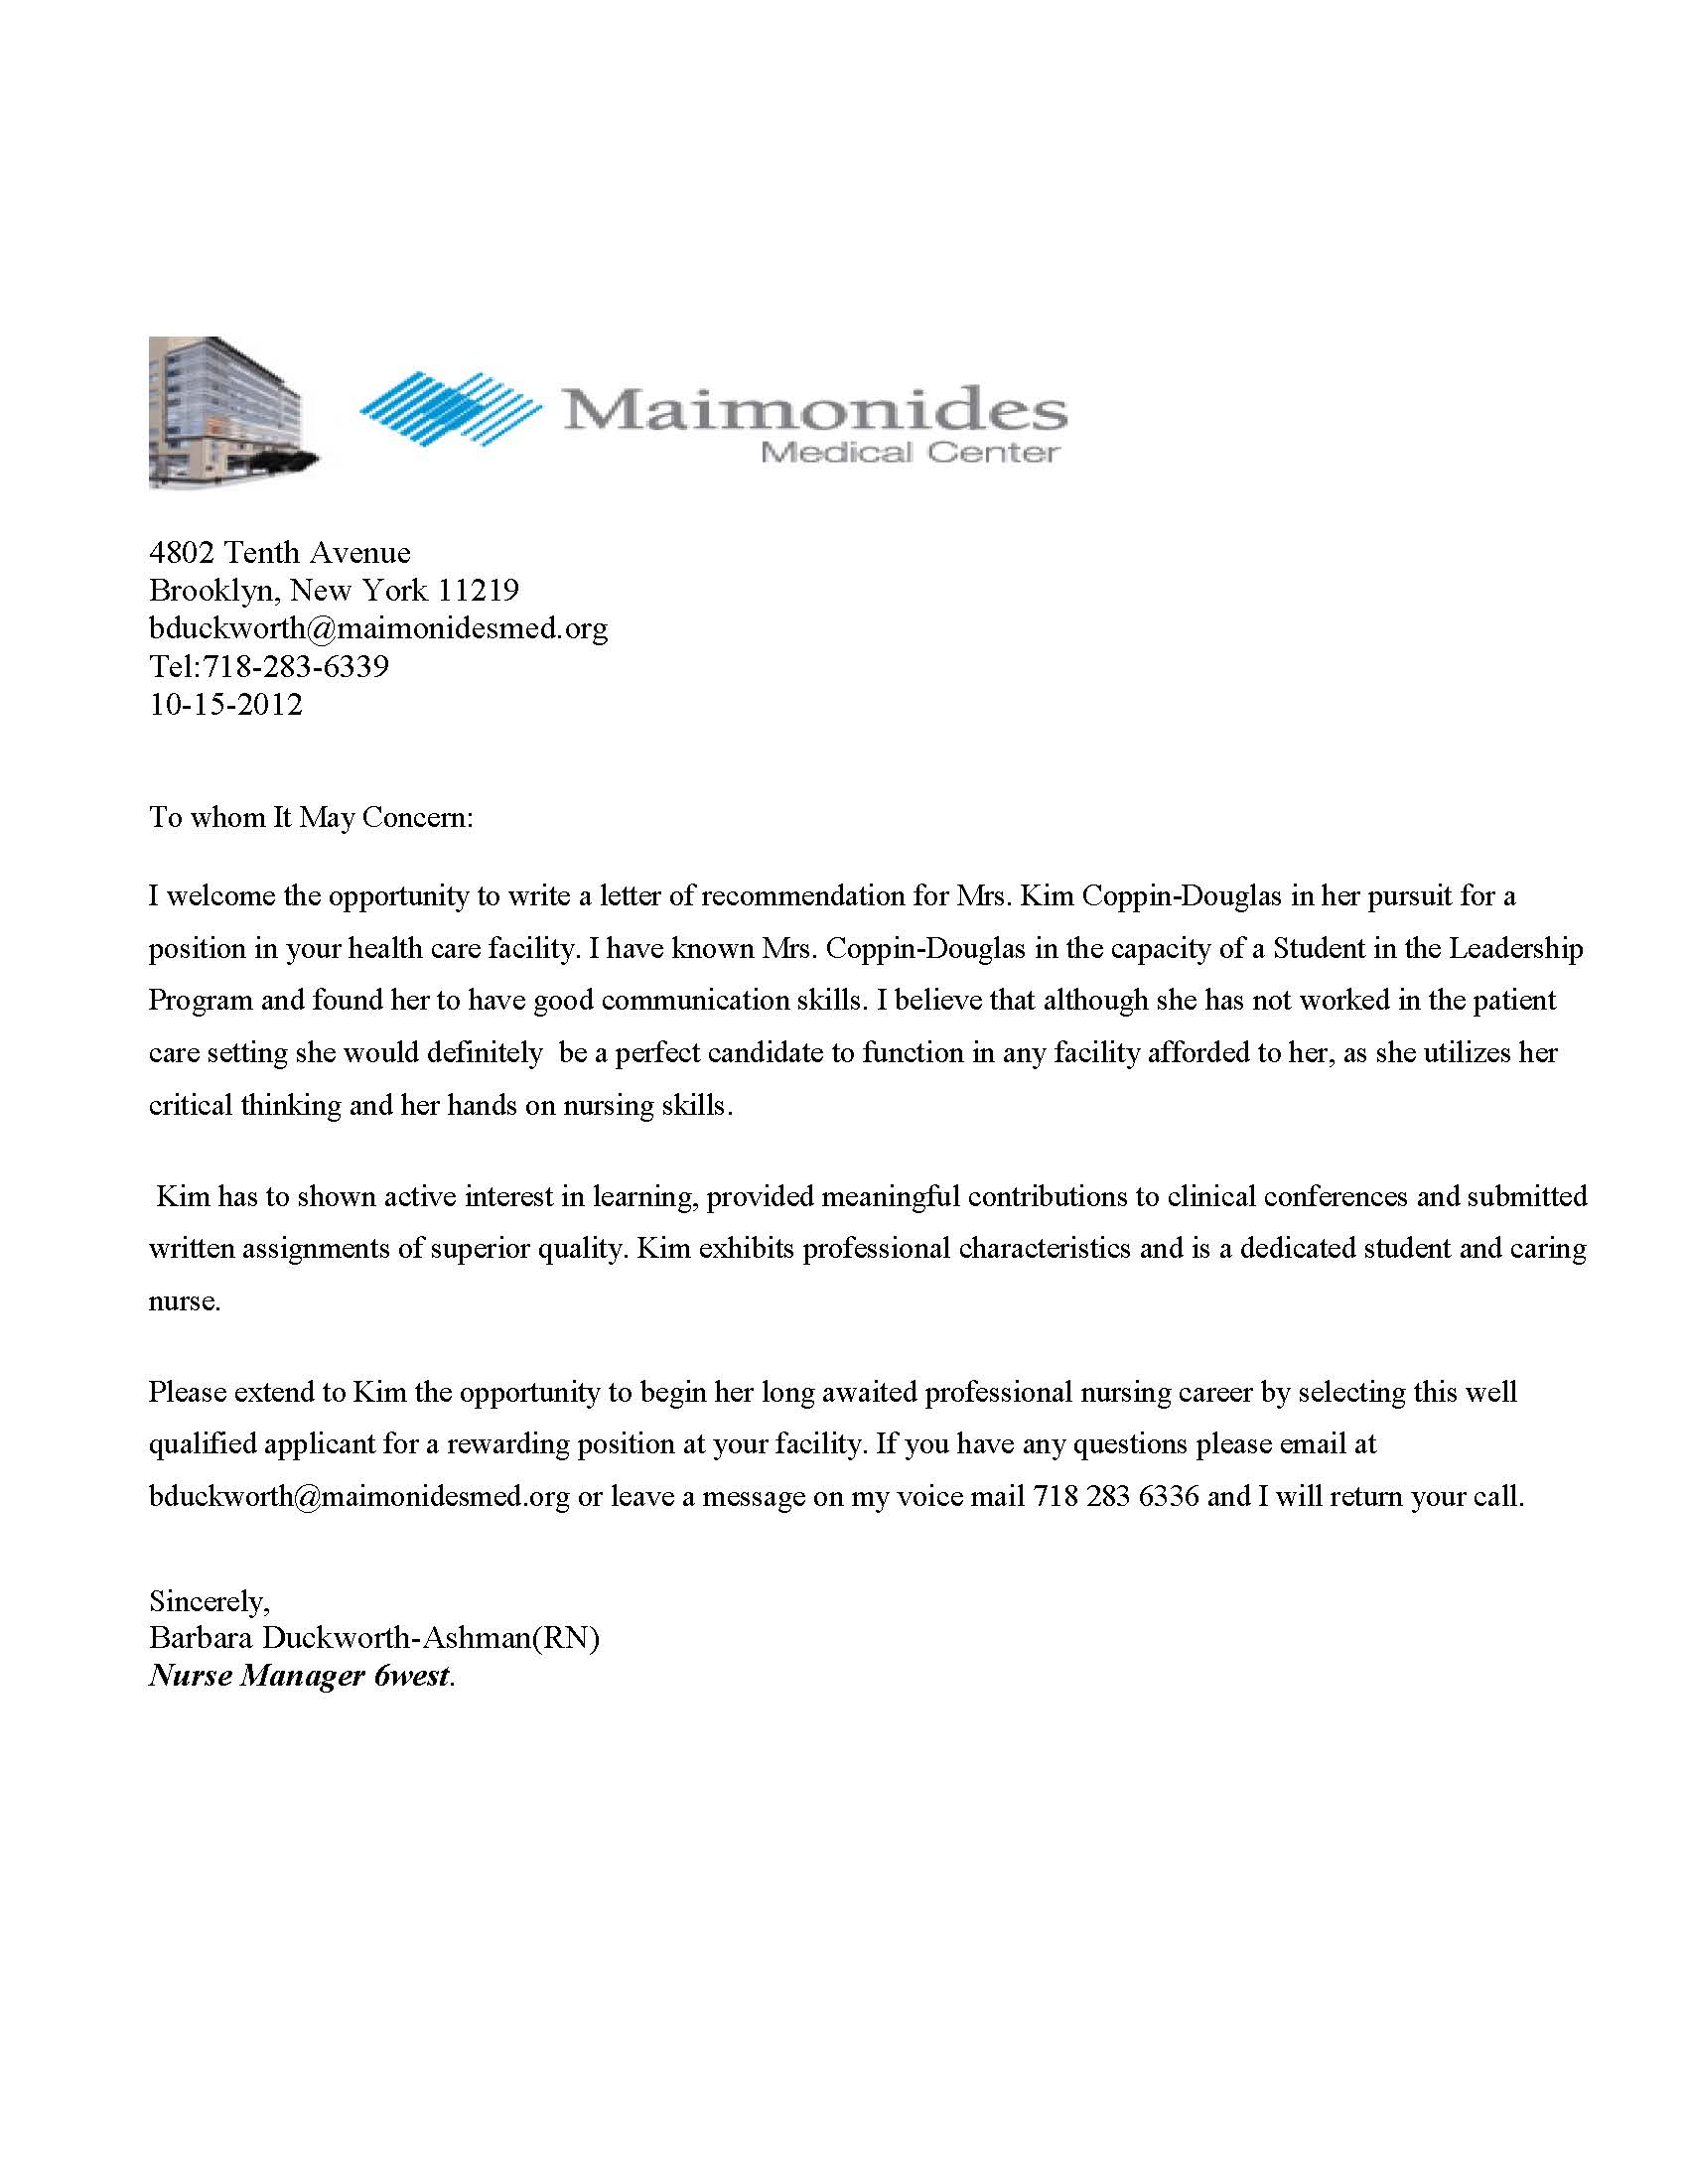 sample recommendation letter for student medical school sample recommendation letter for student medical school sample letter of recommendation medical school maimonides medical